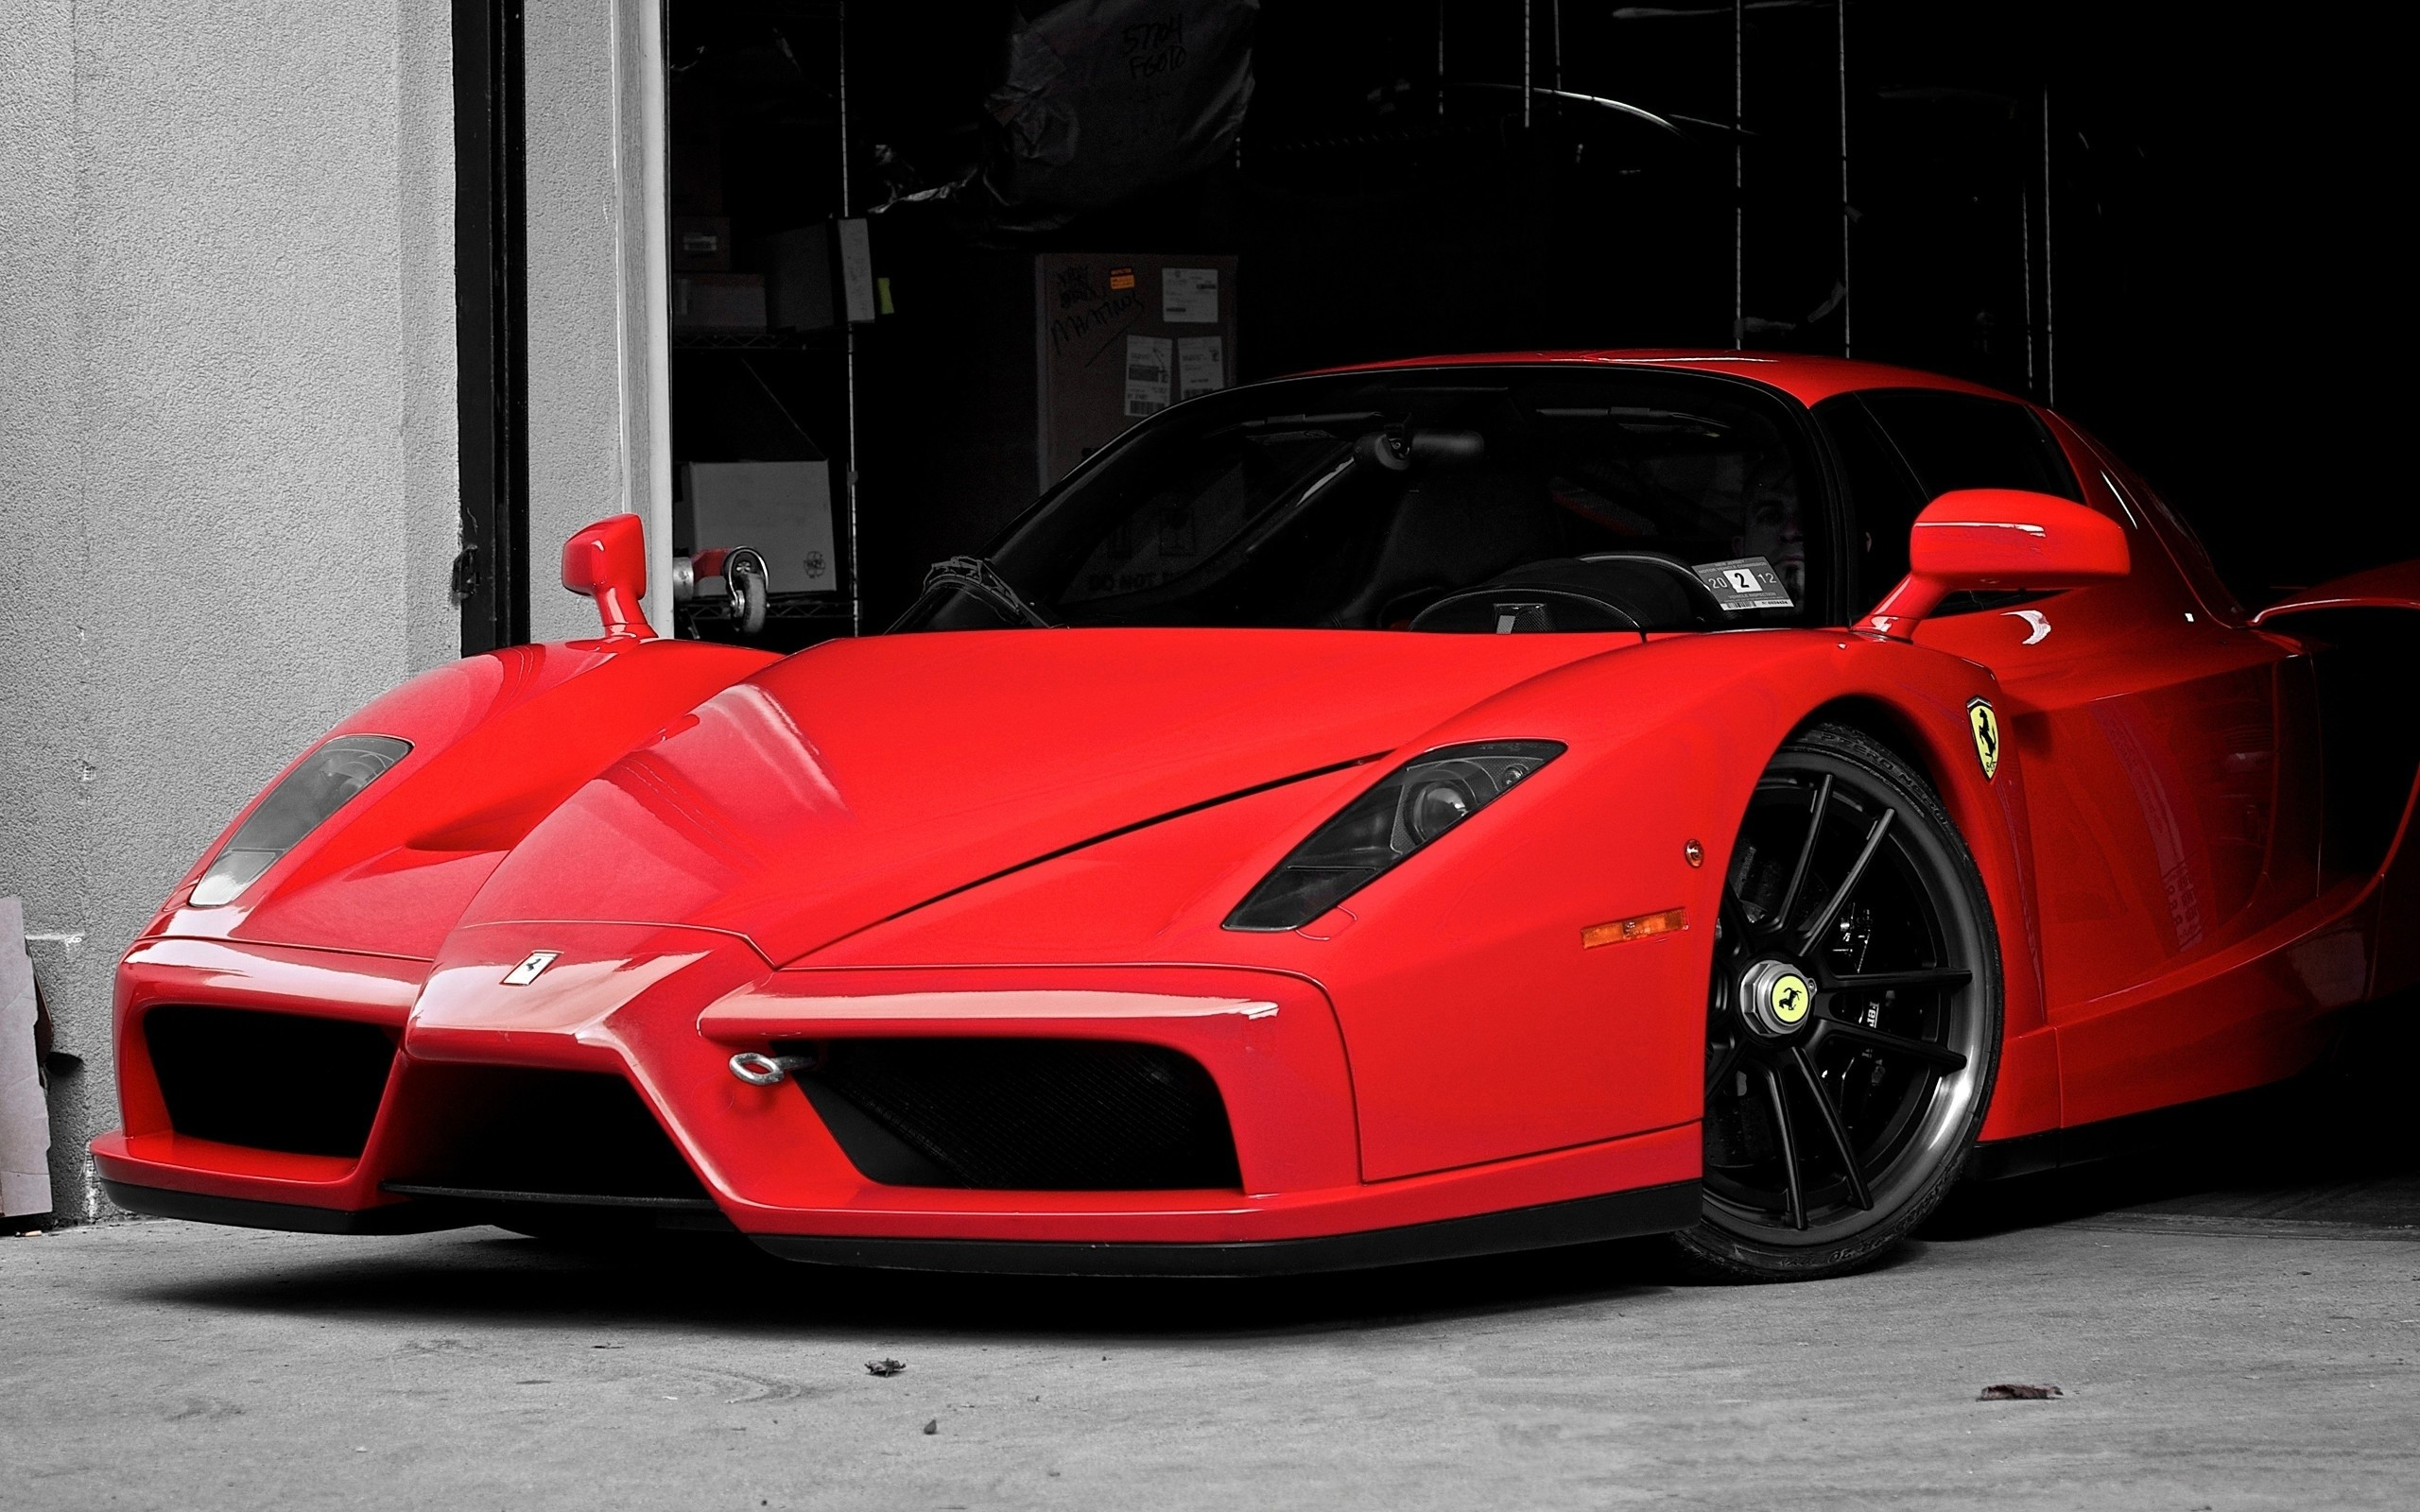 2560x1600 Cars supercars ferrari enzo garages wallpaper